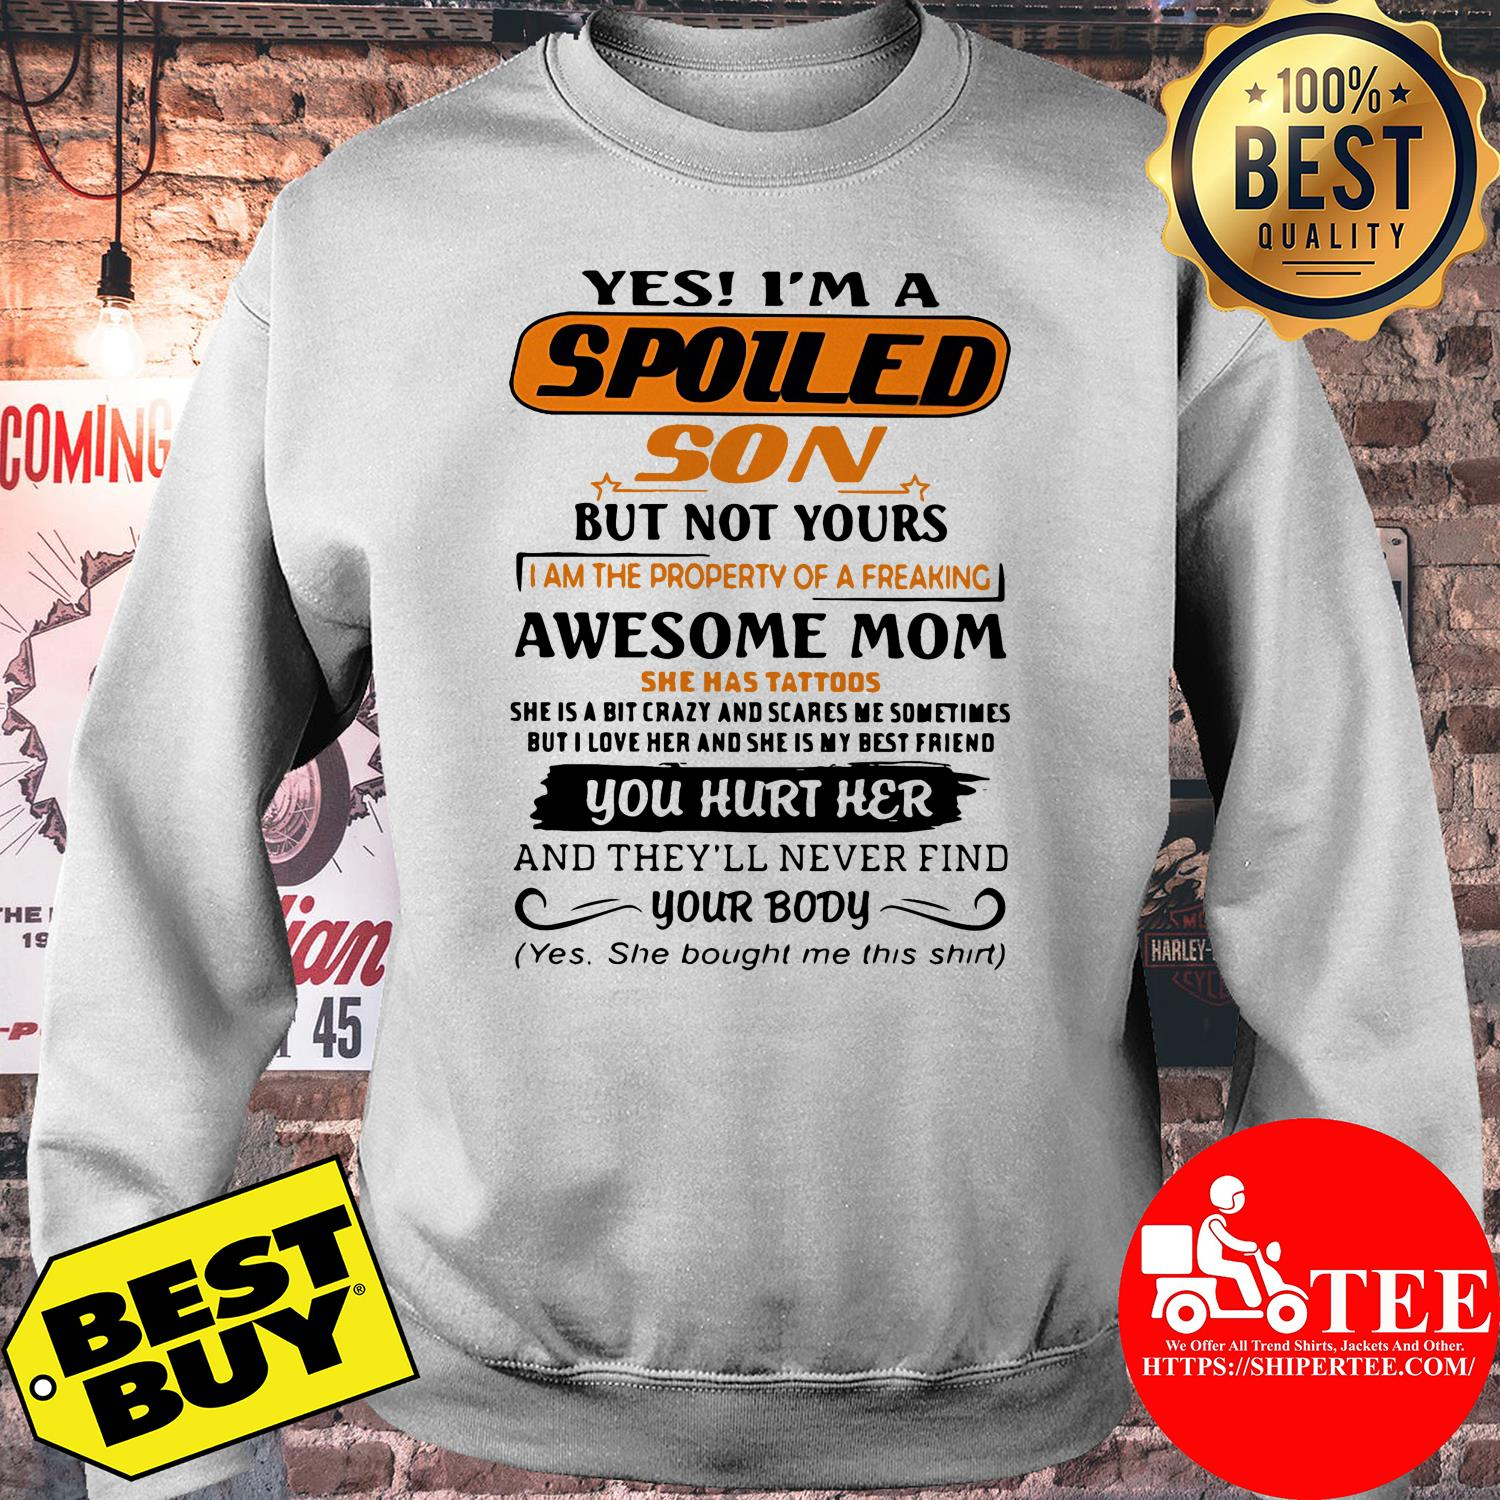 Yes I'm a spoiled son but not yours sweatshirt